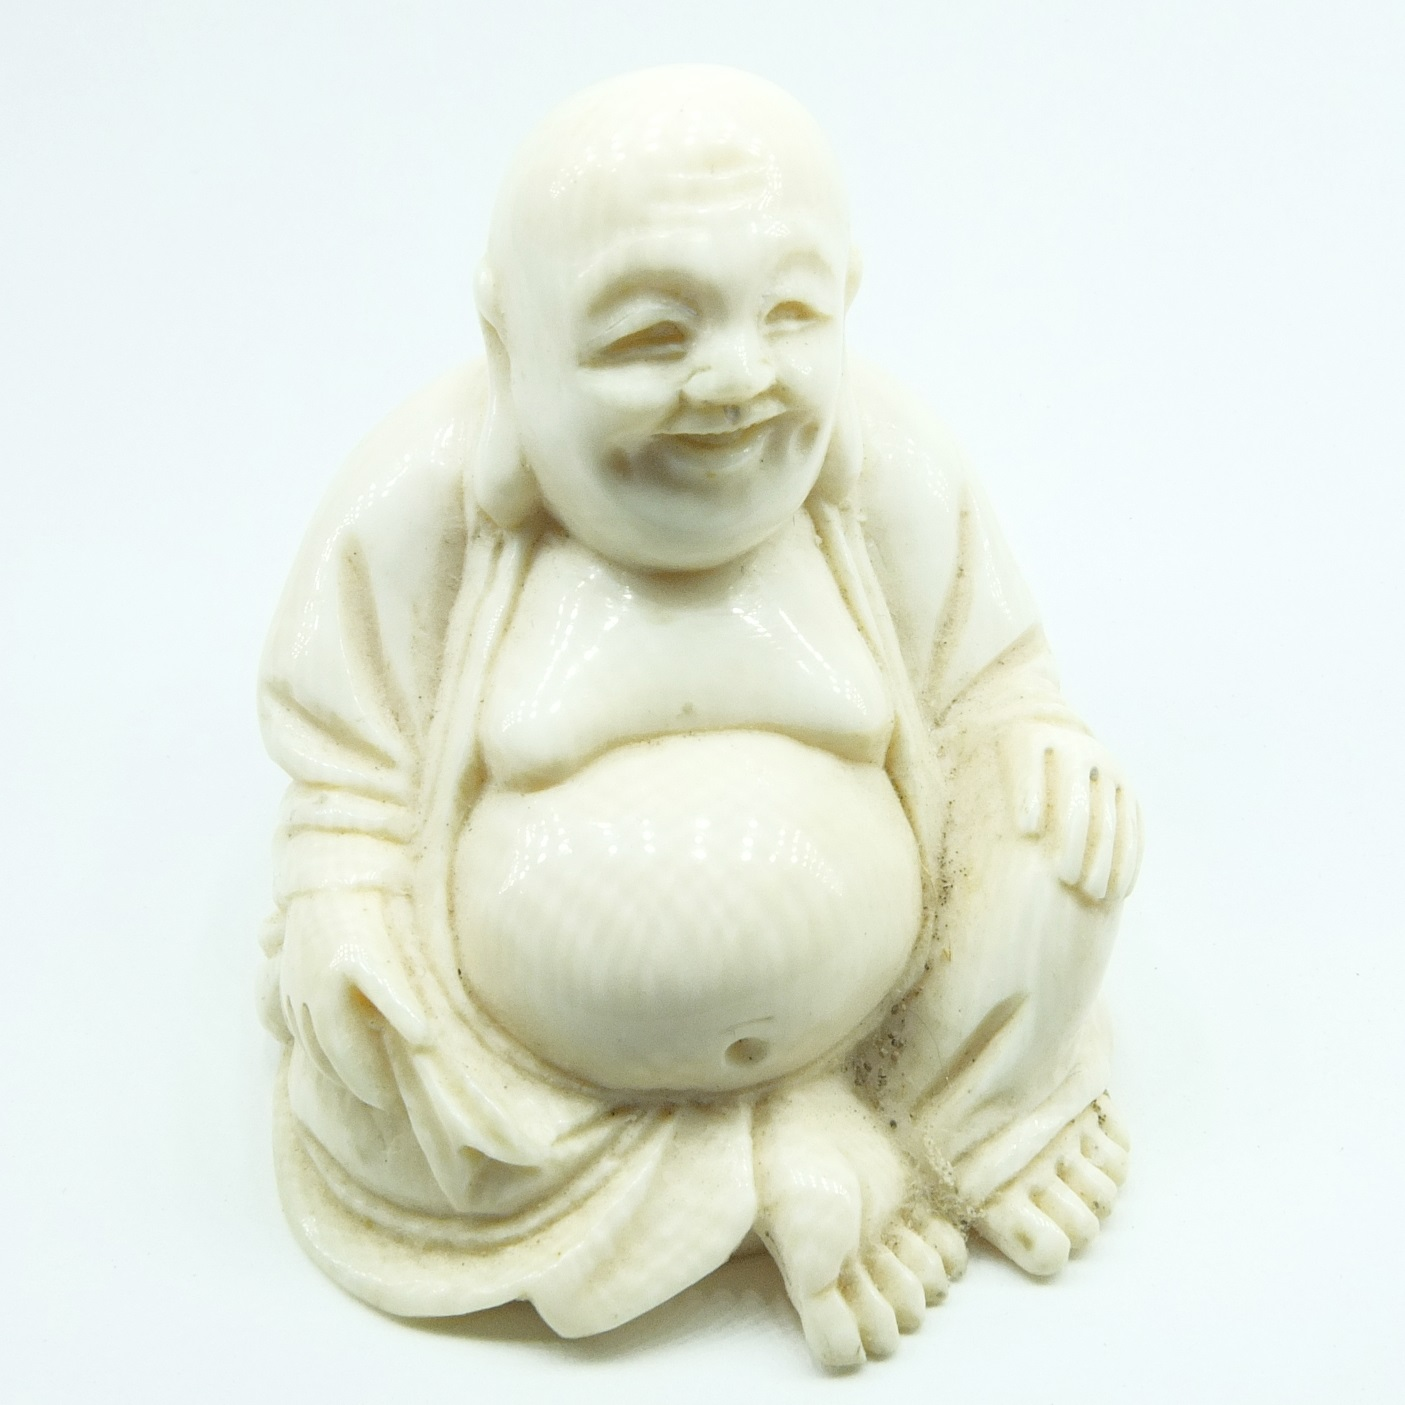 'Small Ivory Carving of Buddha Early to Mid 20th Century'